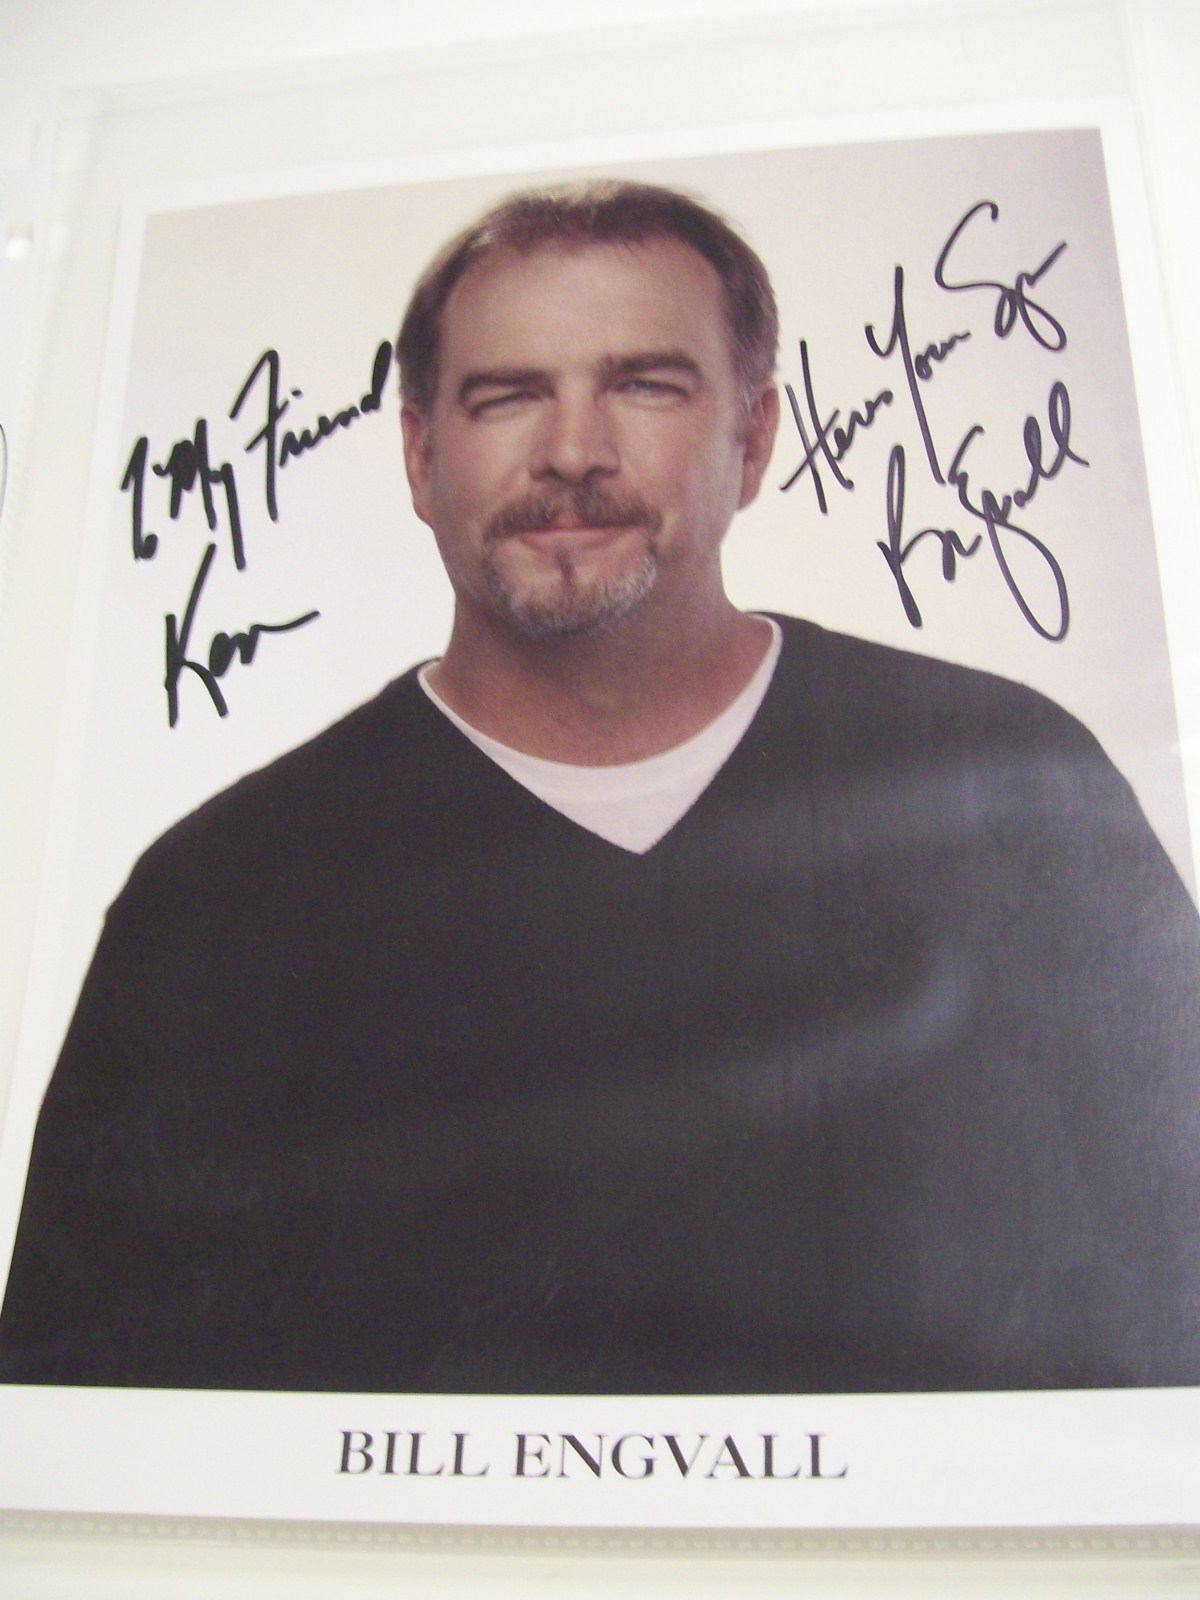 Bill Engvall Autographed photo from restaurant in Florida.